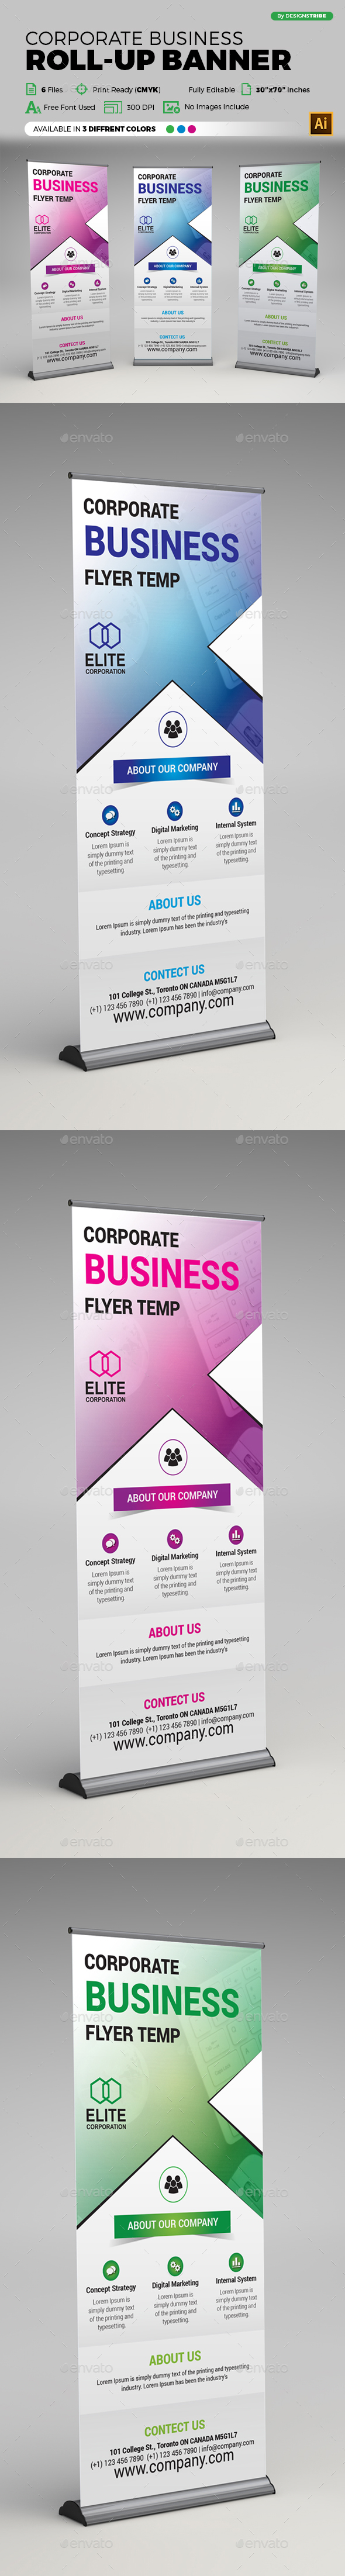 Corporate Business X Banner Template - Signage Print Templates